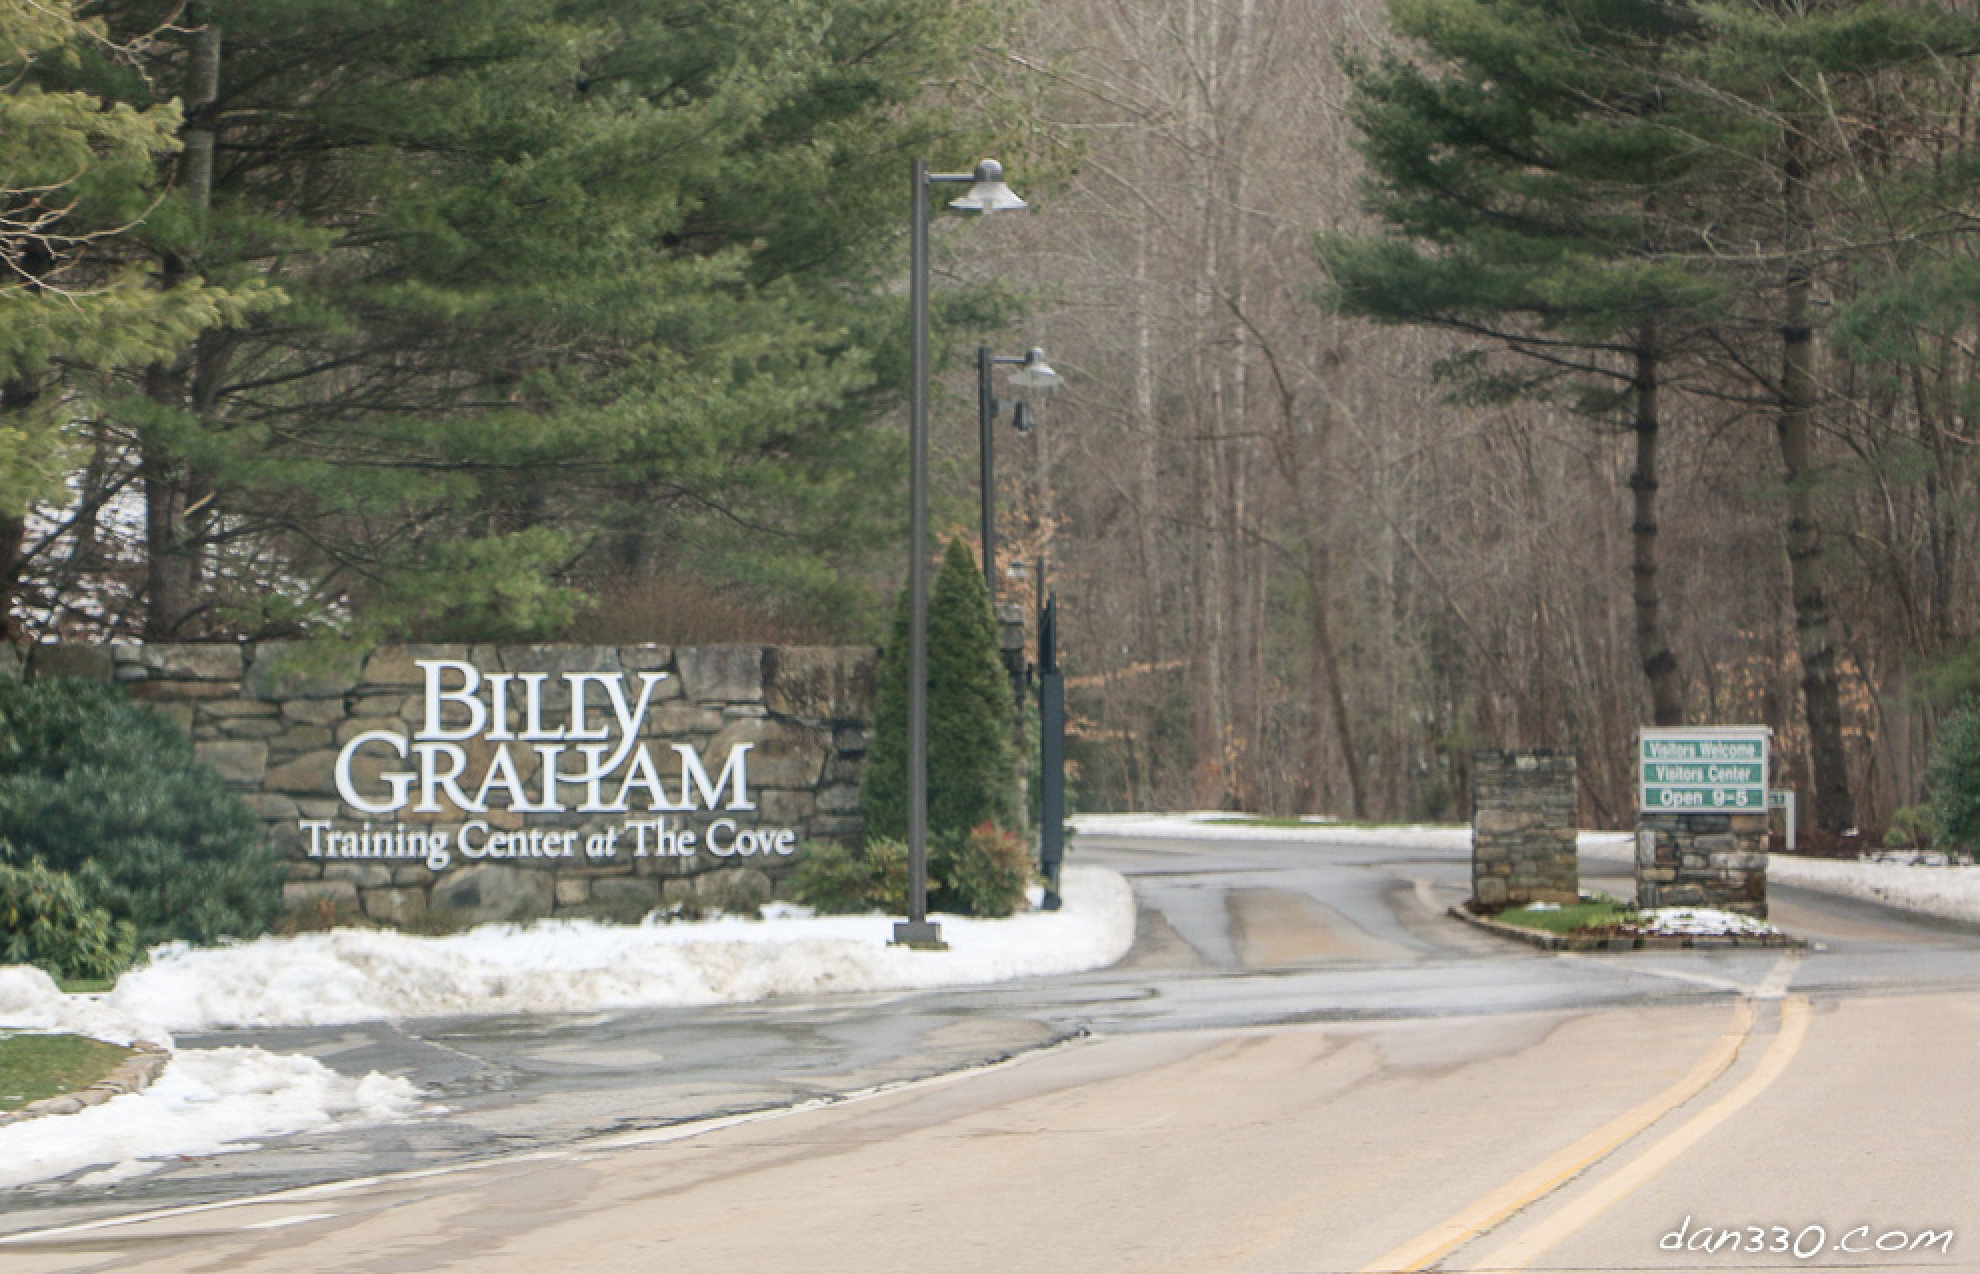 Billy Graham Training Center